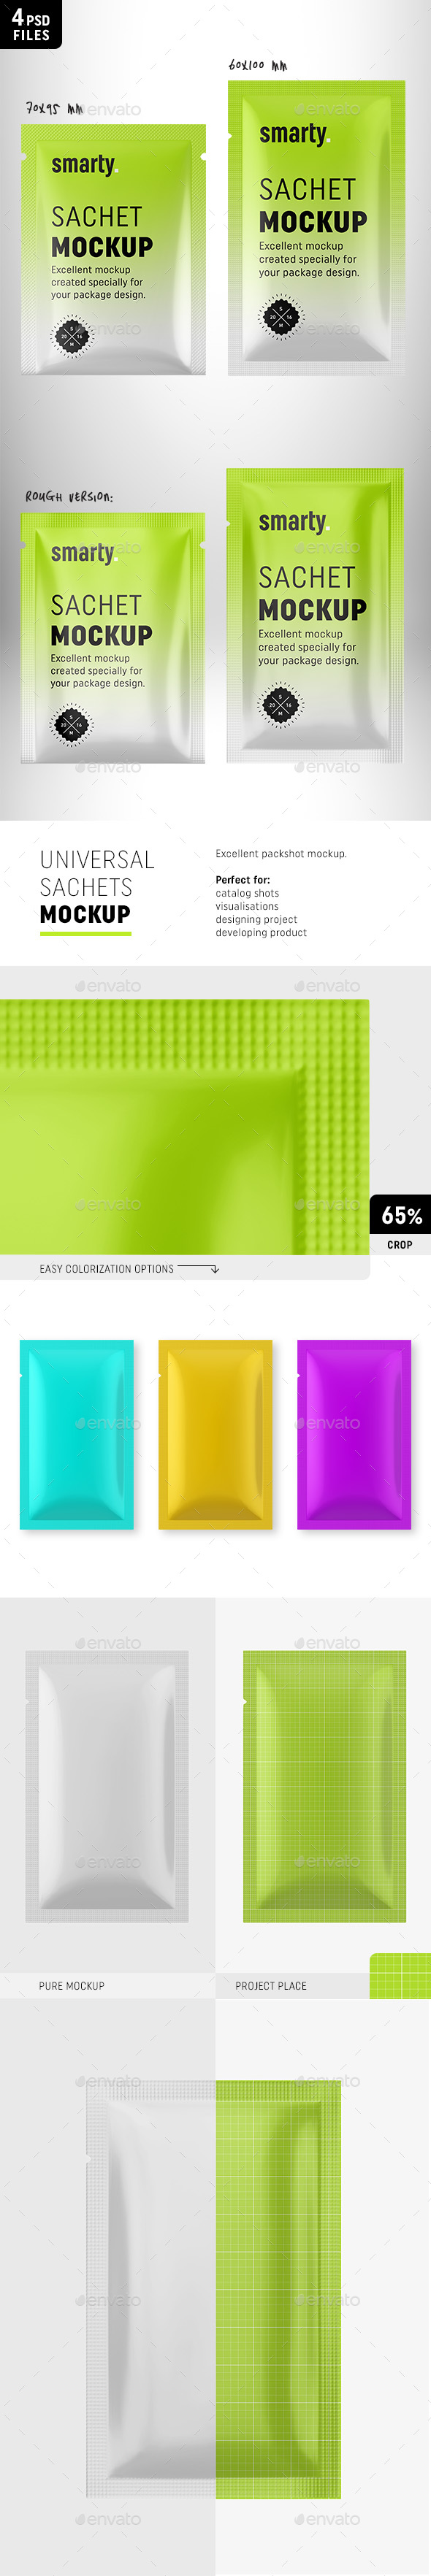 Sachet Mockups Collection - Packaging Product Mock-Ups